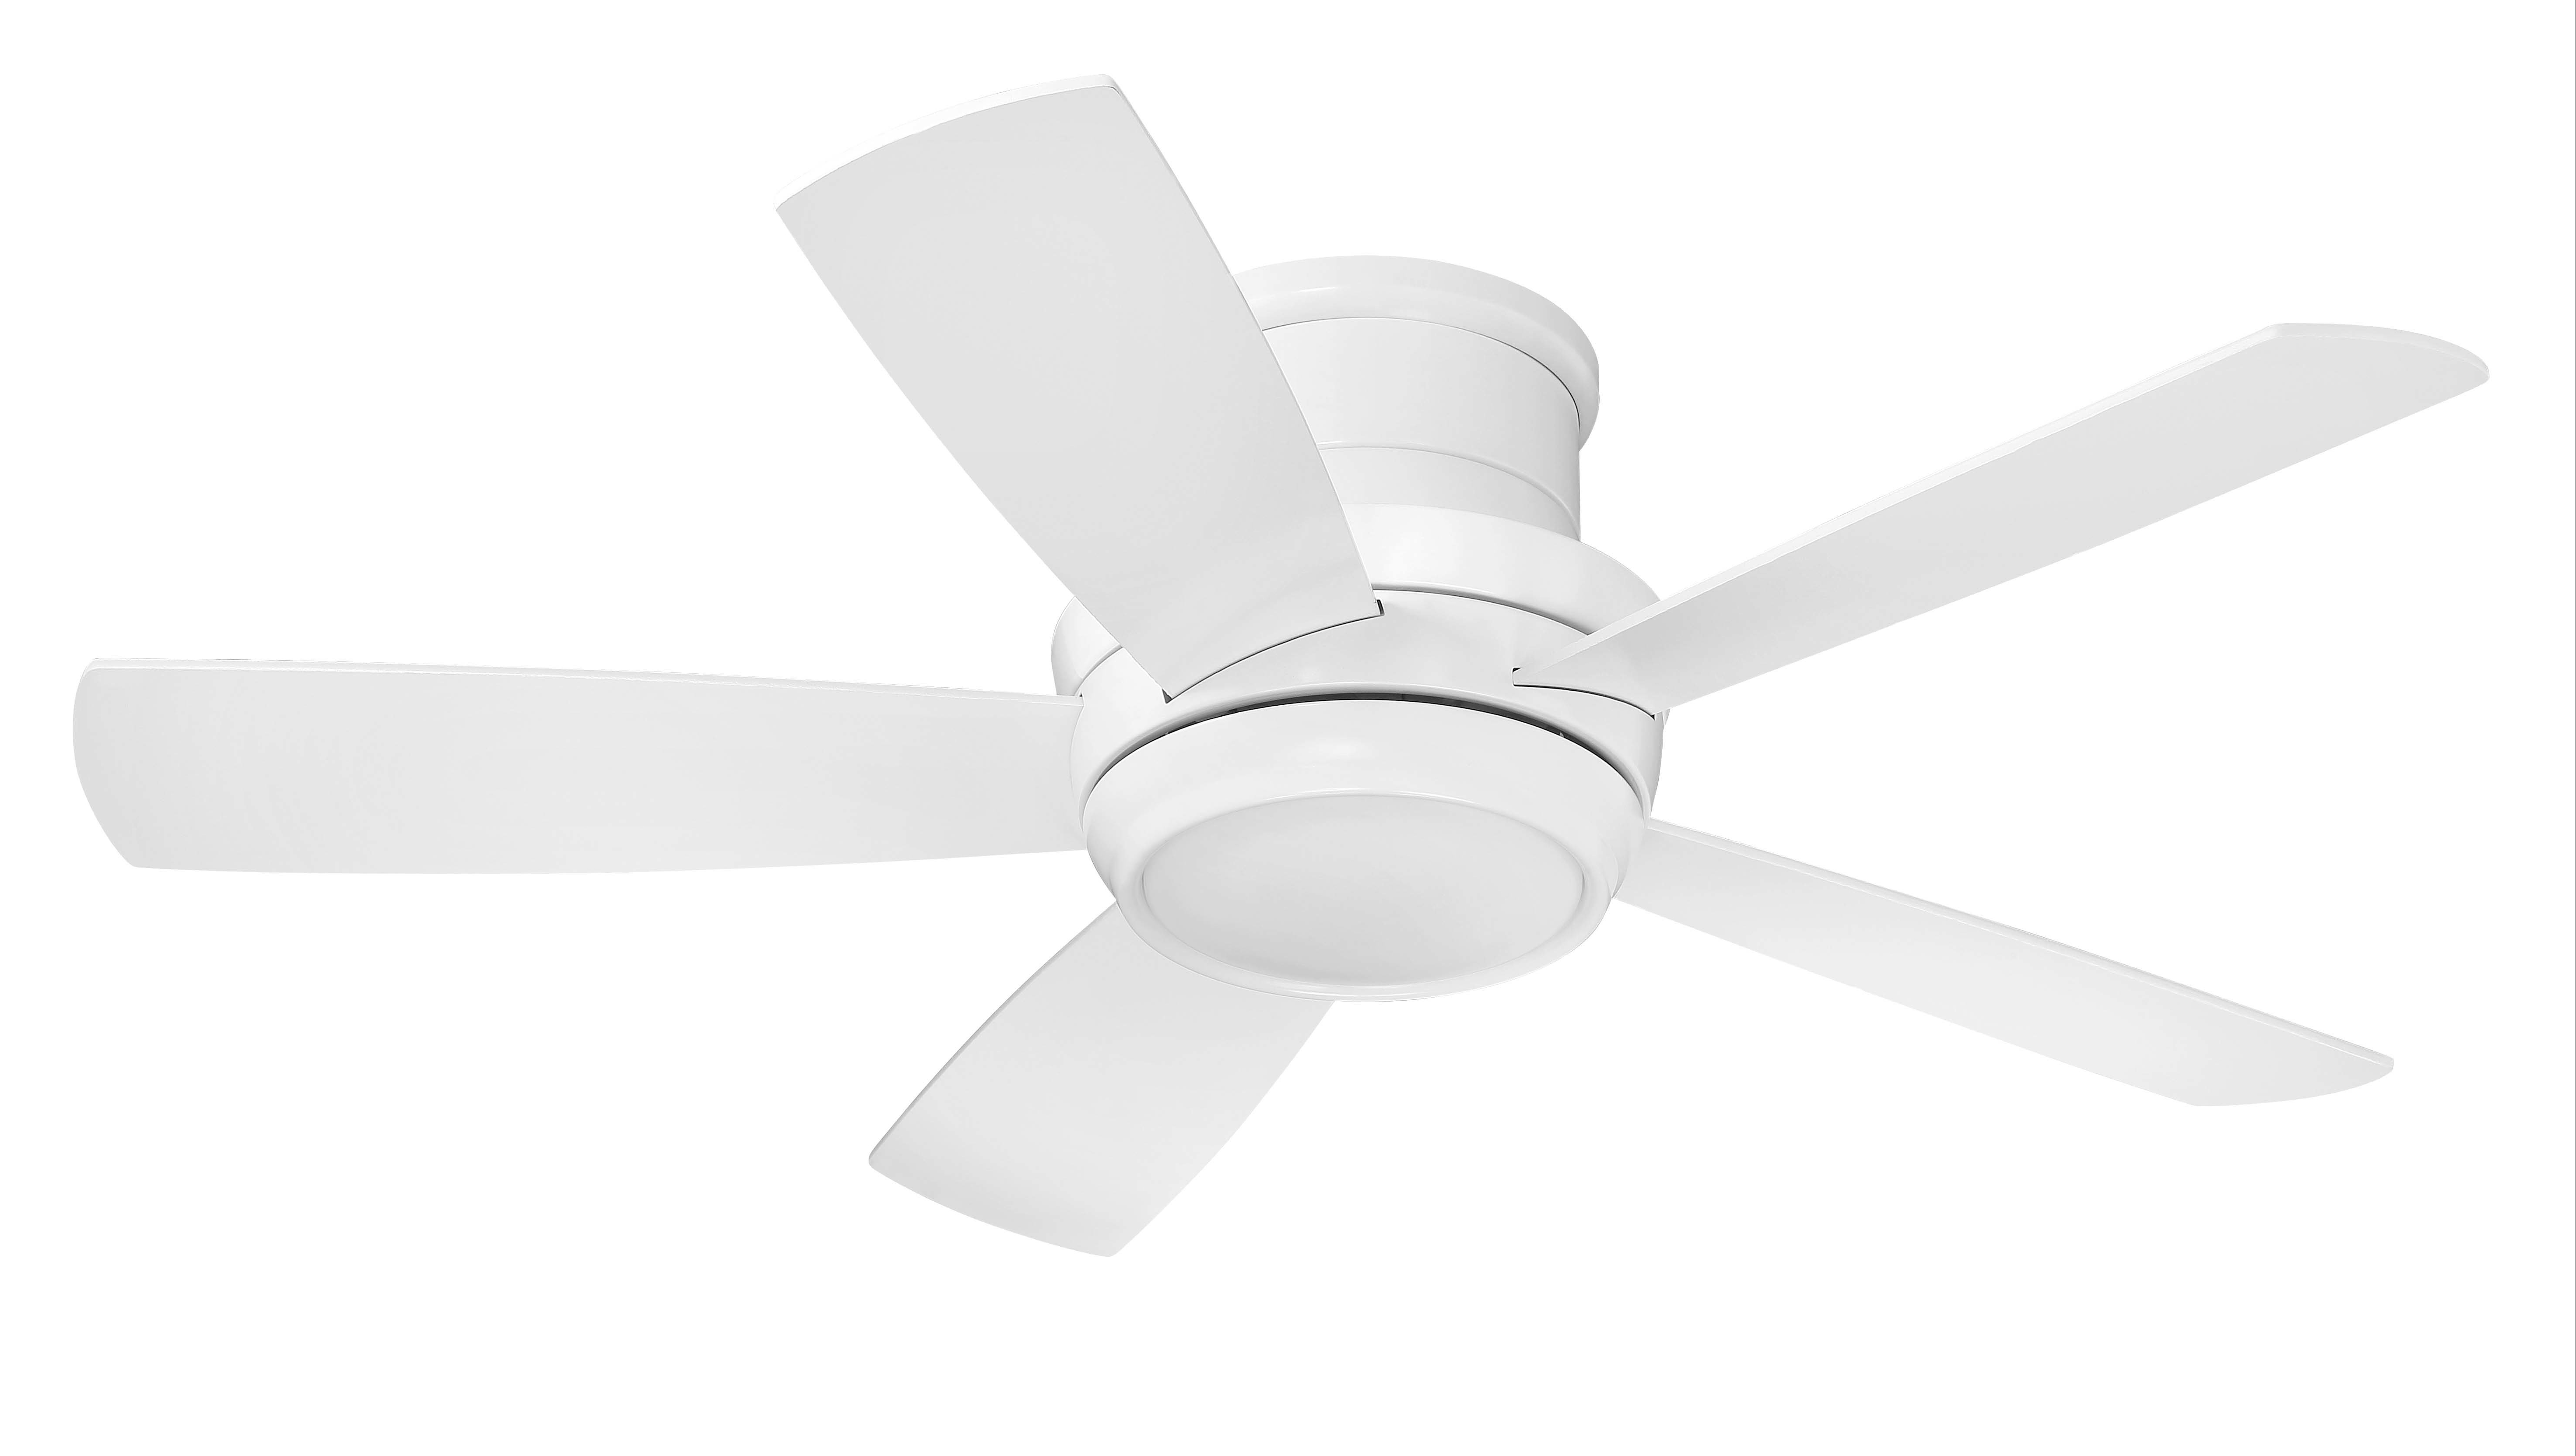 Creslow 5 Blade Ceiling Fans With 2020 Modern Latitude Run Ceiling Fans (View 15 of 20)